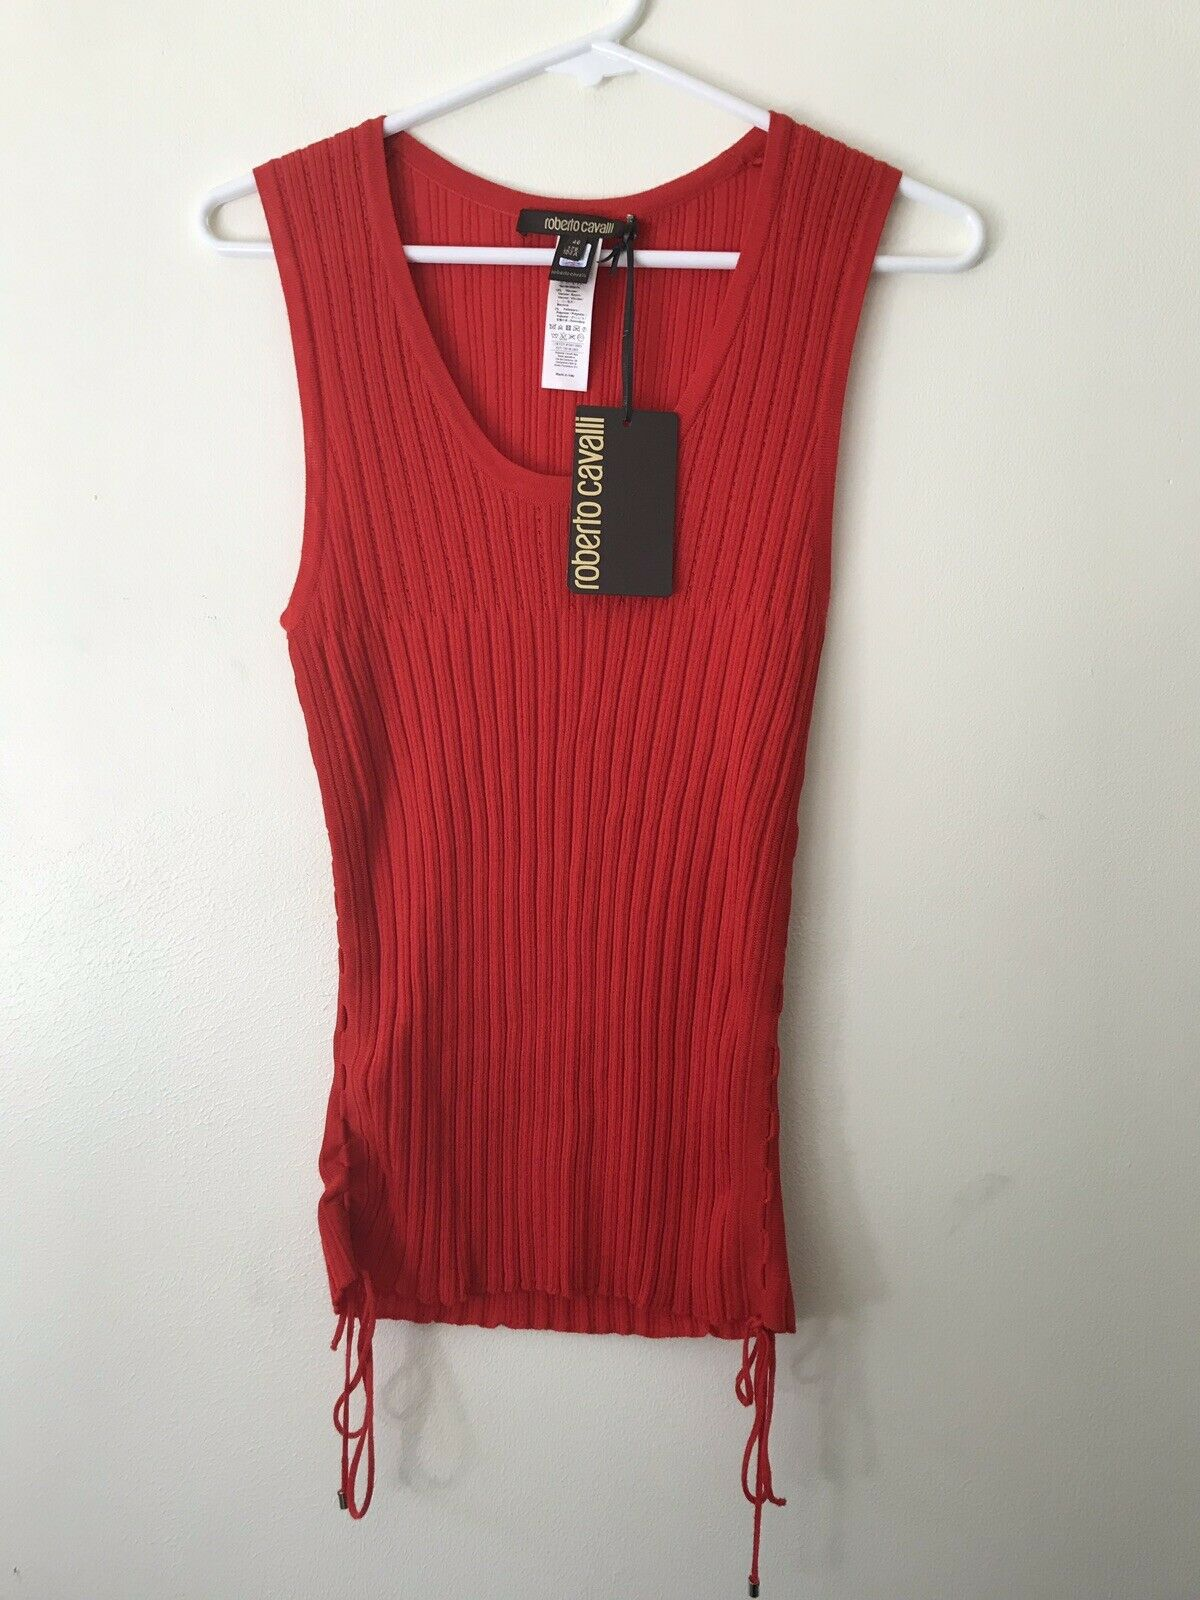 NWT  Roberto Cavalli Red Ribbed Lace- Up Top Tank Sz 46